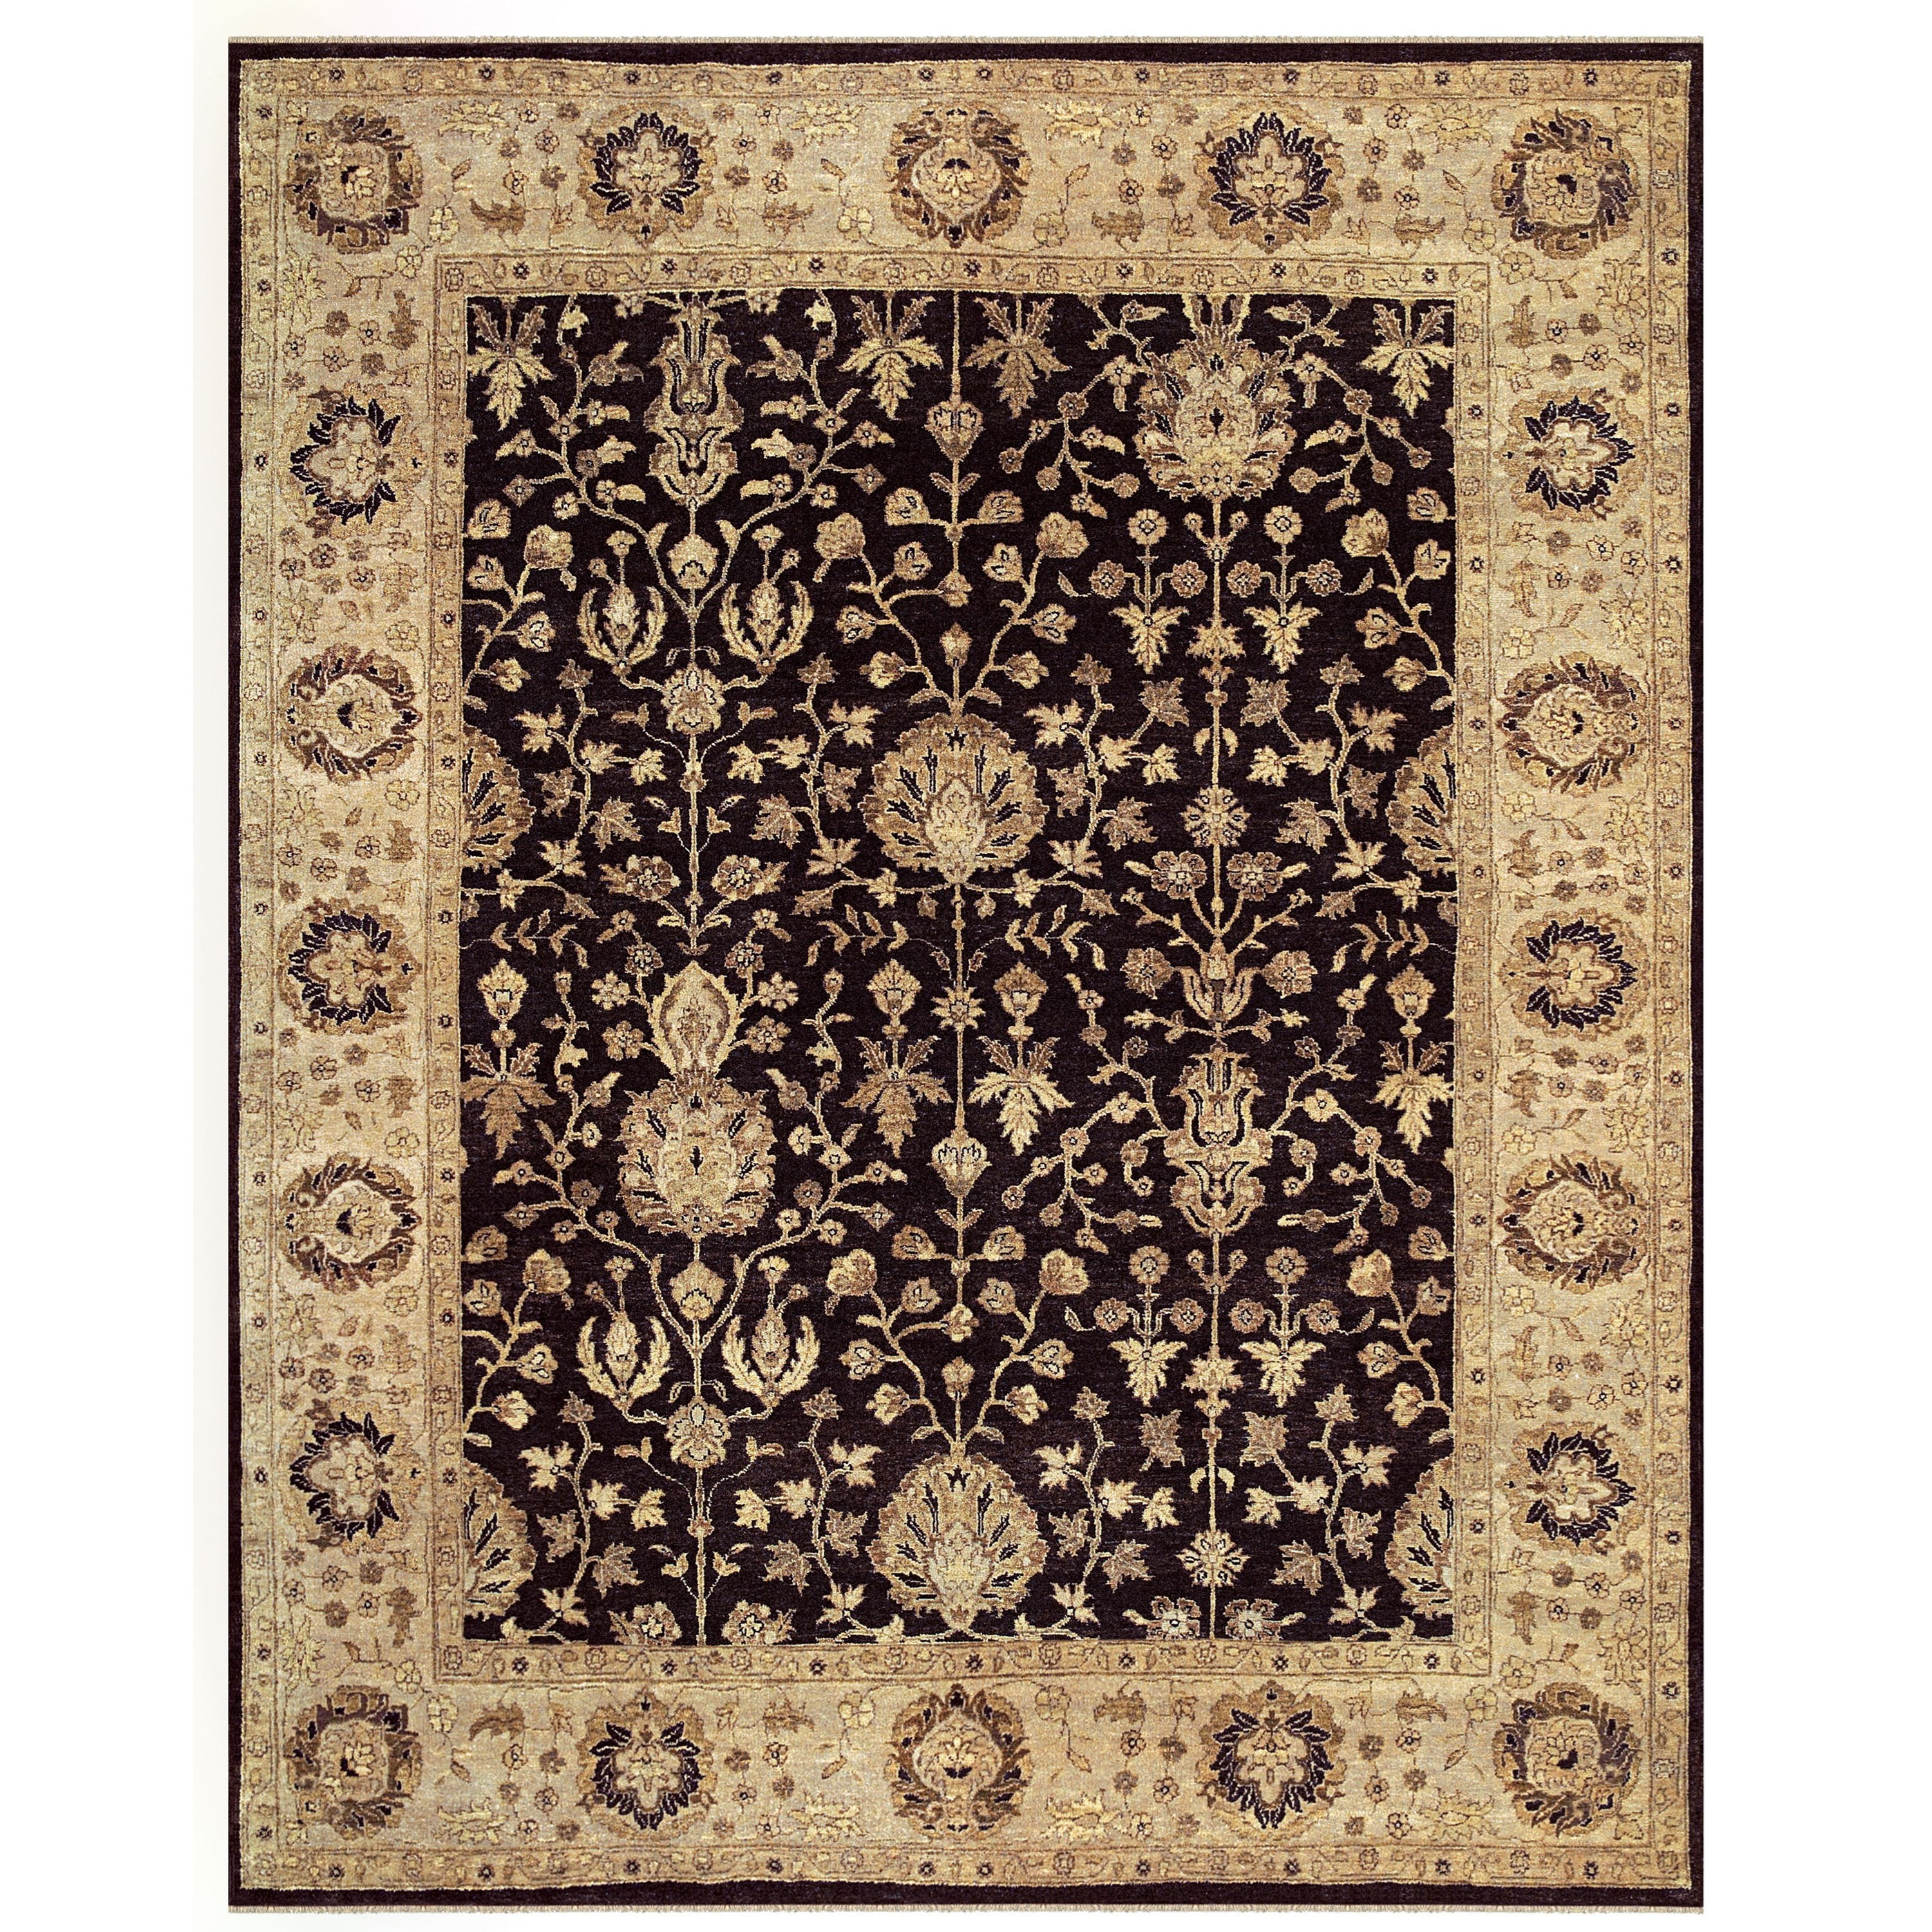 "Drake Black/Beige 8'-6"" x 11'-6"" Area Rug by Feizy Rugs at Sprintz Furniture"